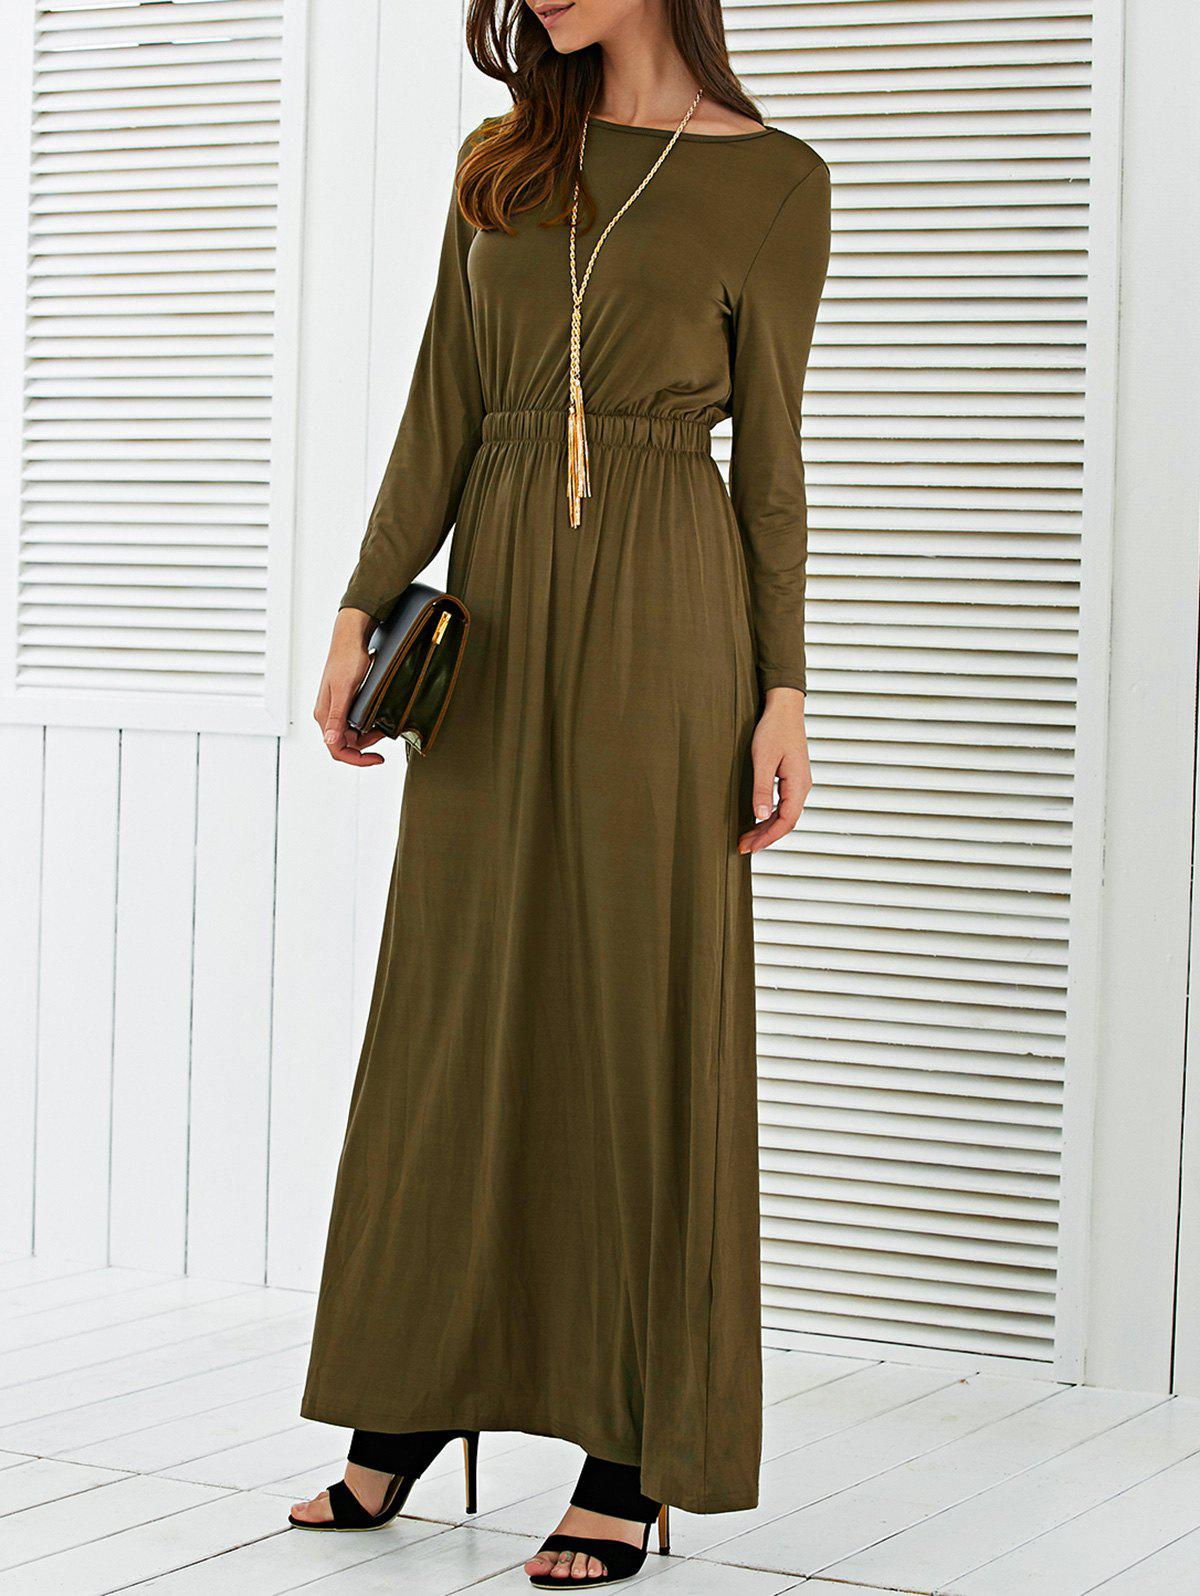 Long Sleeve Waisted Maxi Dress long sleeve waisted maxi dress